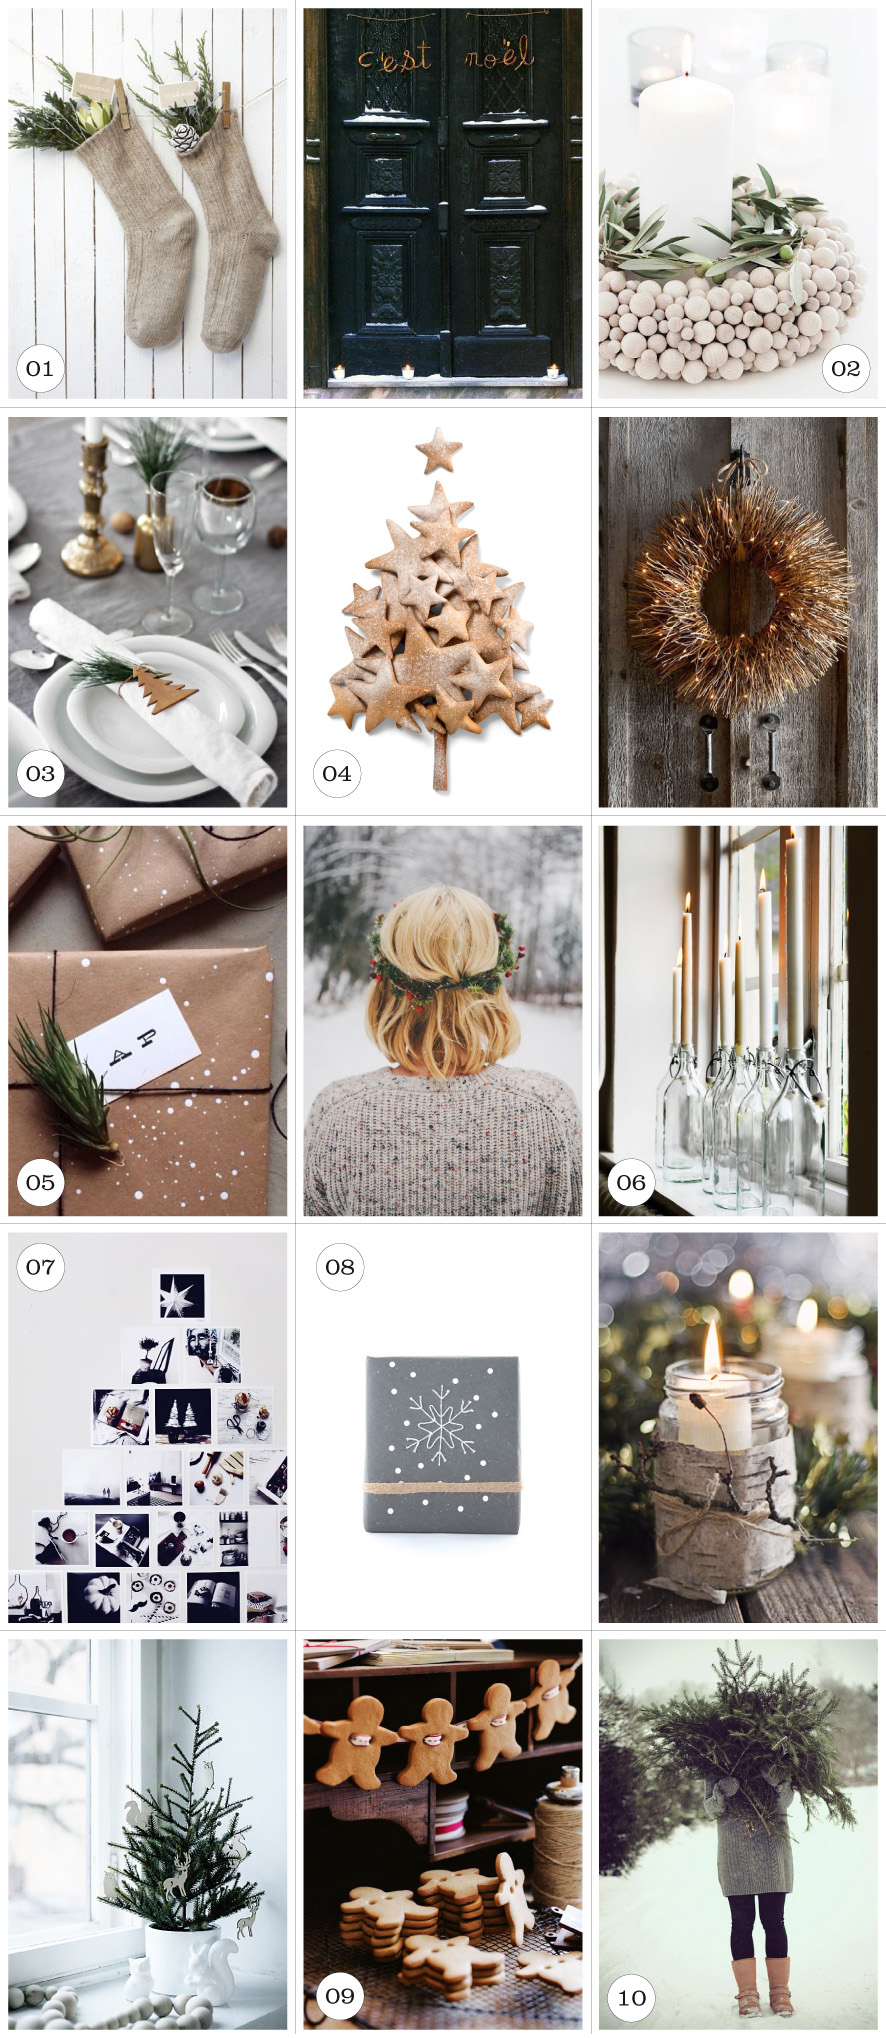 Christmas Decorations 2013 via Stylejuicer